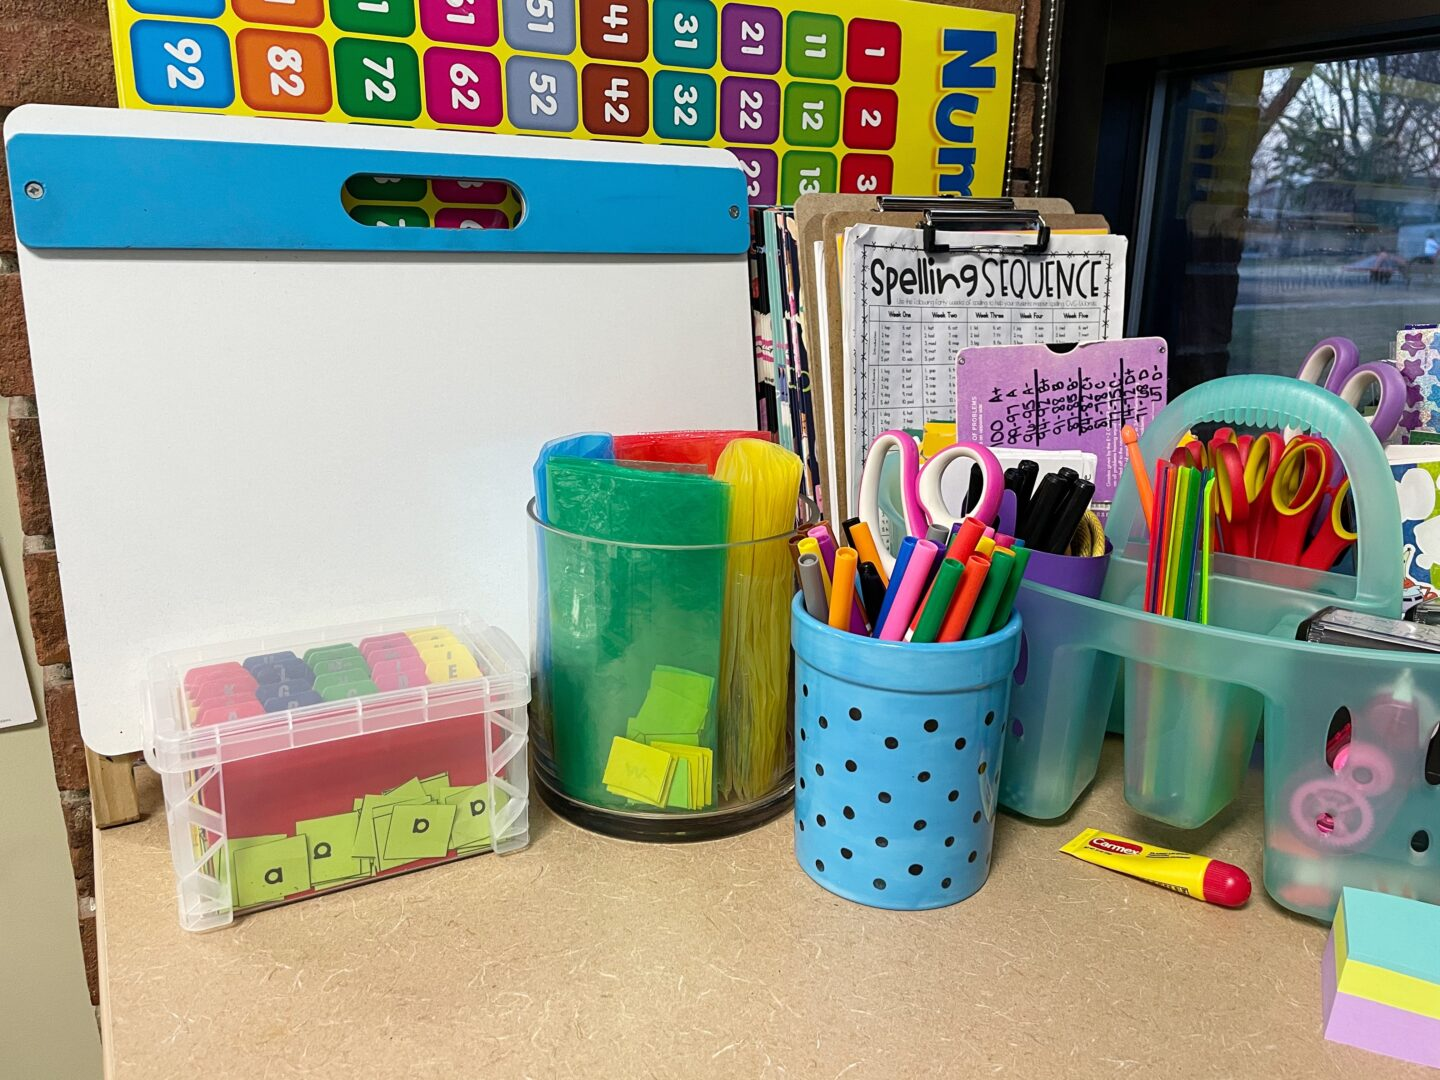 Image of a Desk with Storage options for Letter Tiles and Sandwich Bags